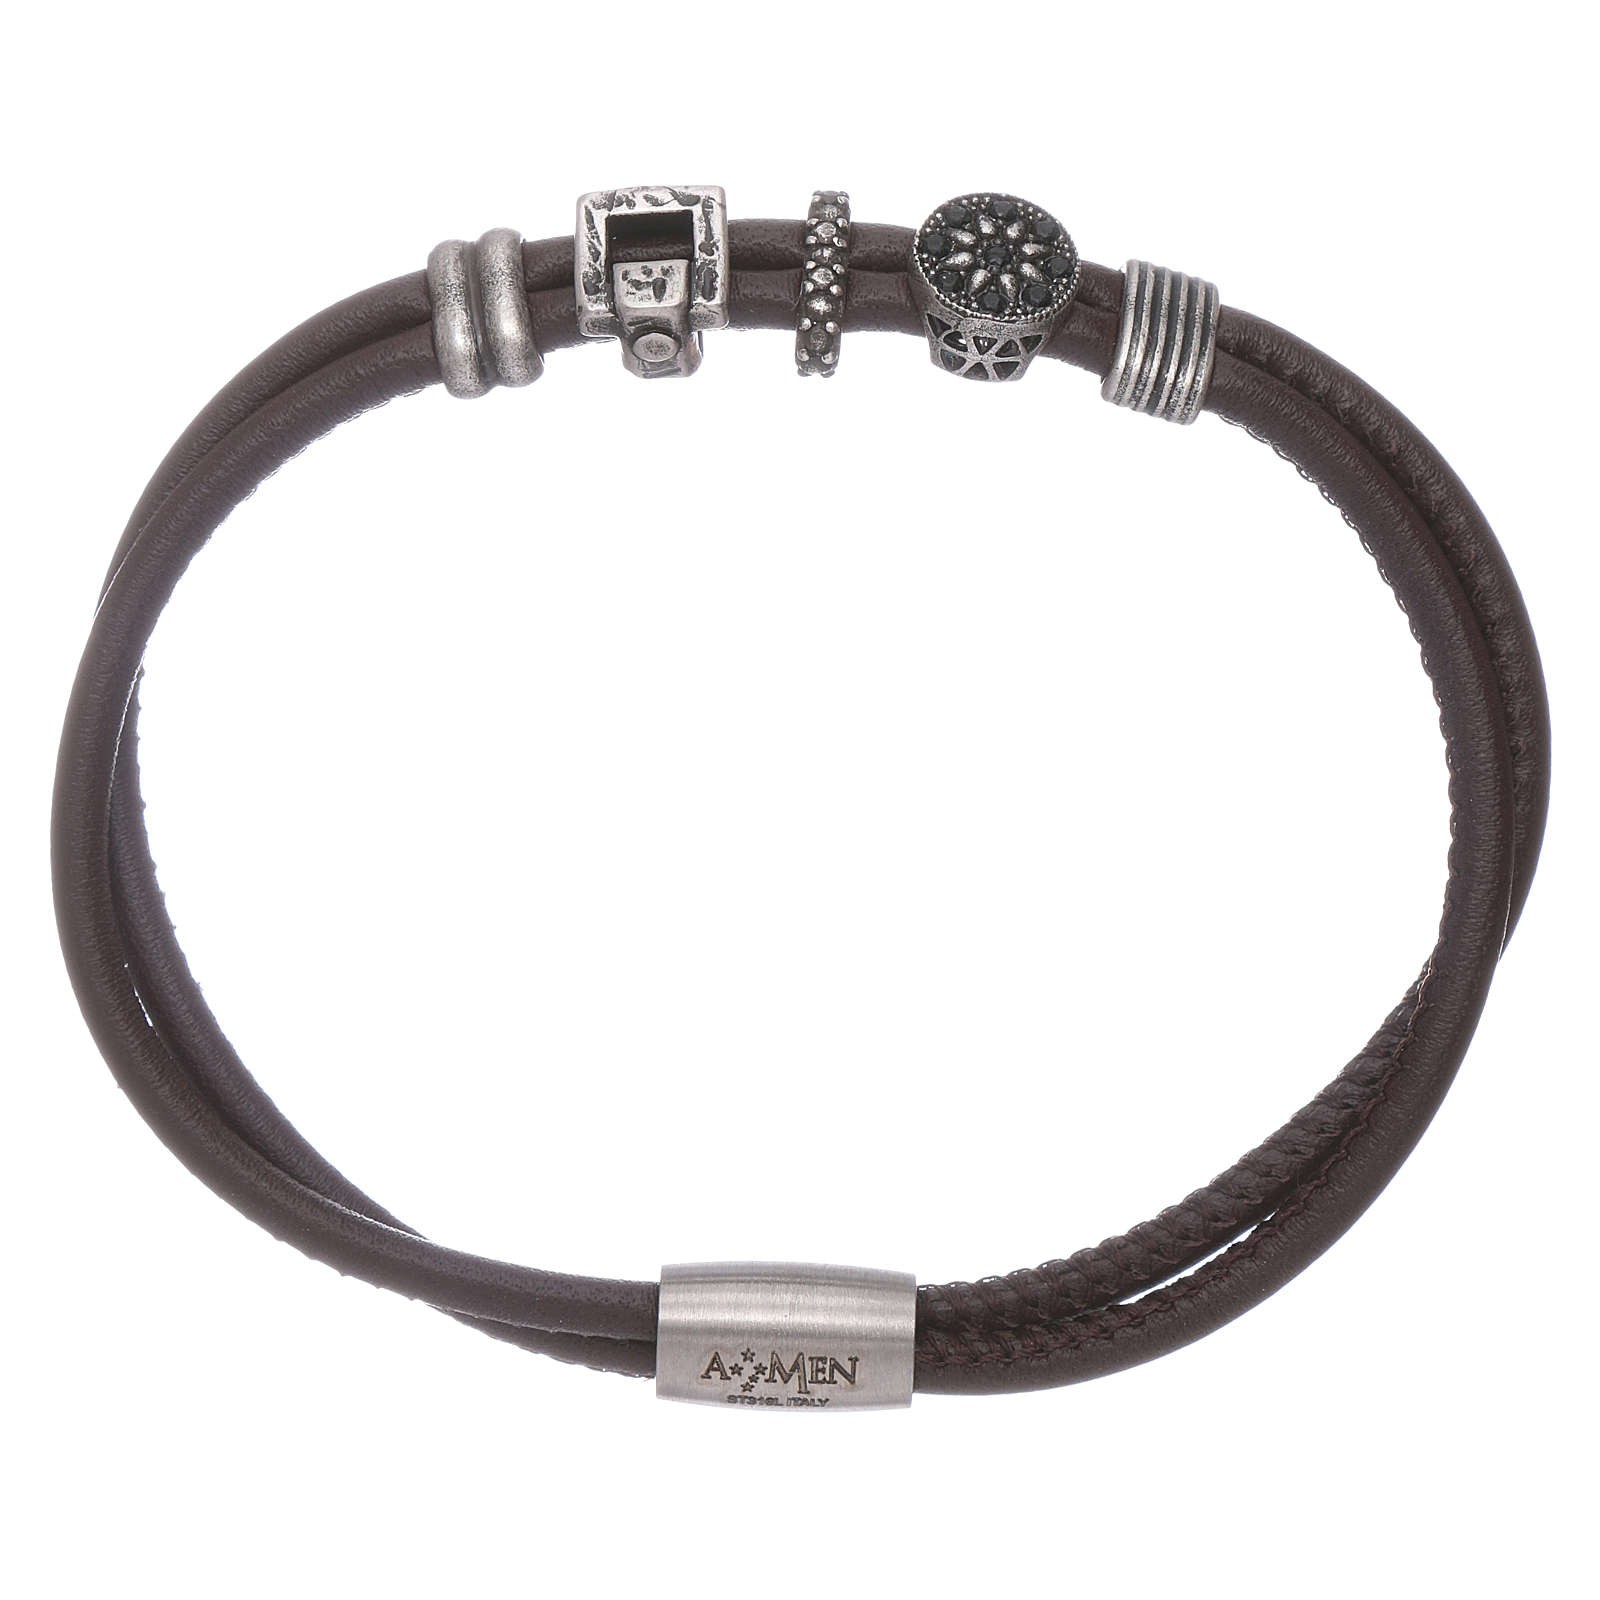 AMEN leather bracelet with bronze and zirconate charms 4